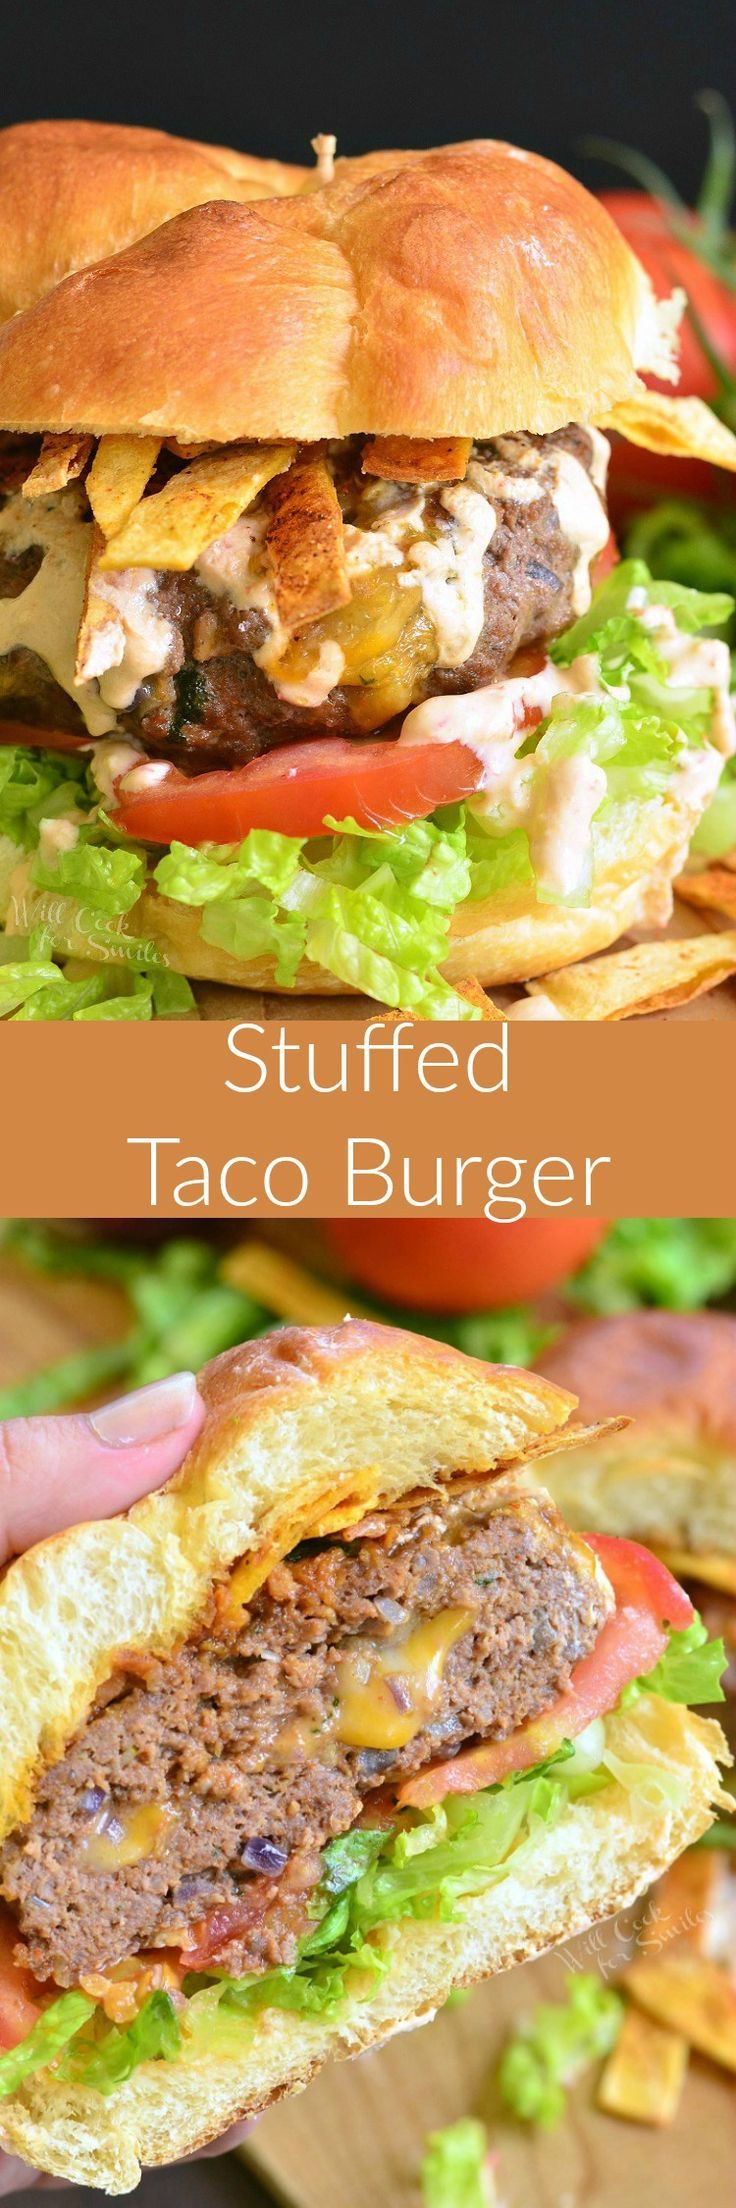 Stuffed Taco Burger. These burgers are stuffed with gooey cheese, packed with taco seasoning, and topped with creamy chili sauce and crispy tortilla strips.